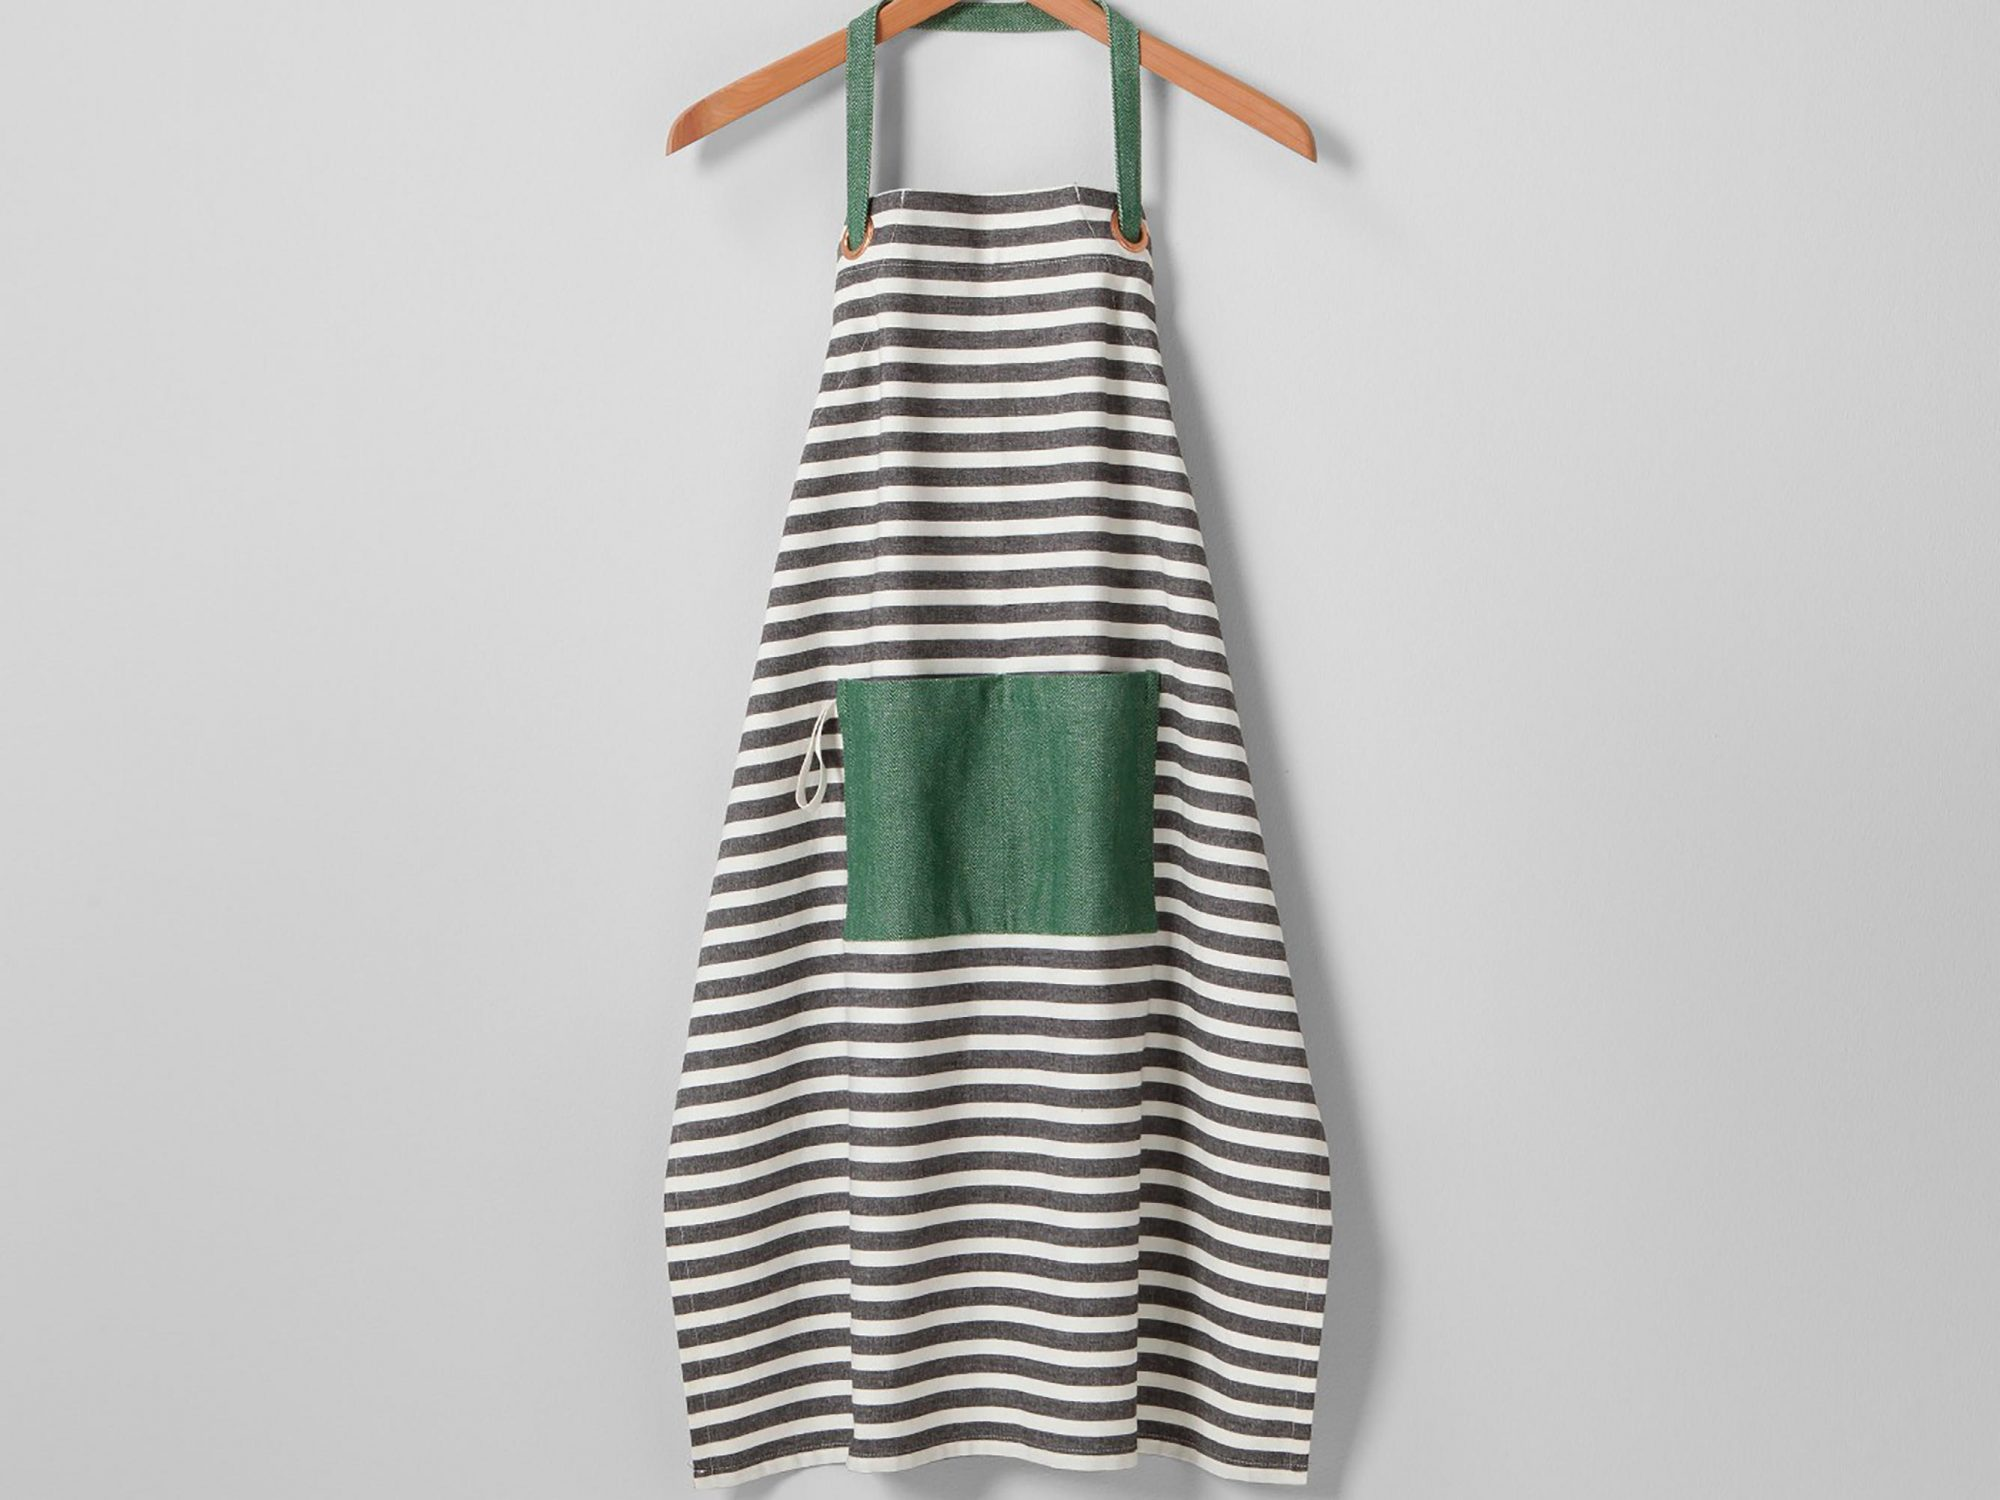 5 of Our Favorite Kitchen Buys From Joanna and Chip's Target Collection 1804w-Joanna-Apron